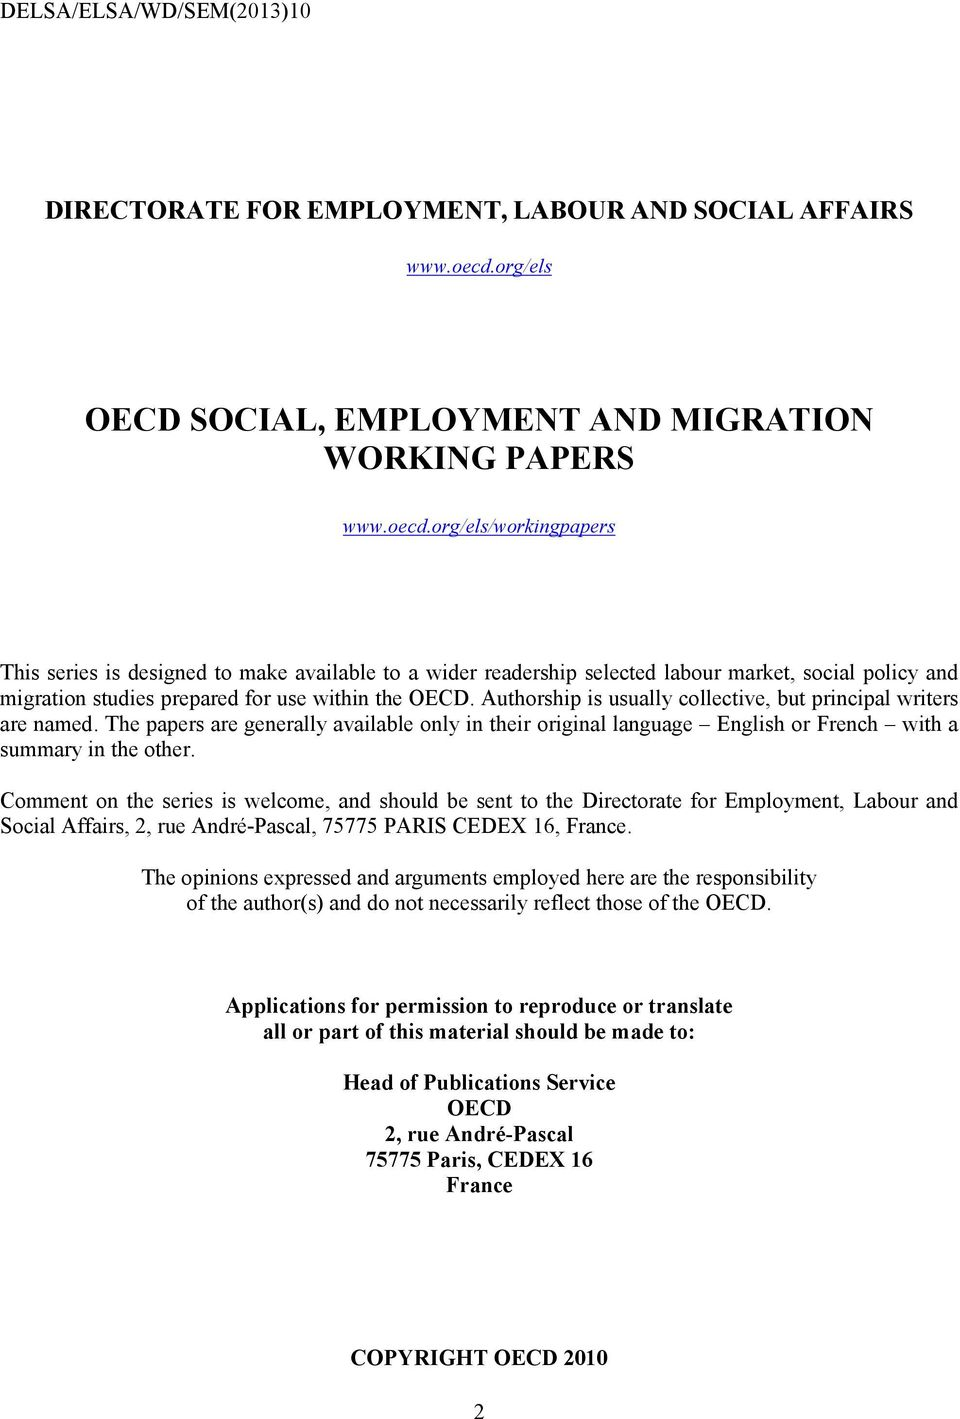 org/els/workingpapers This series is designed to make available to a wider readership selected labour market, social policy and migration studies prepared for use within the OECD.